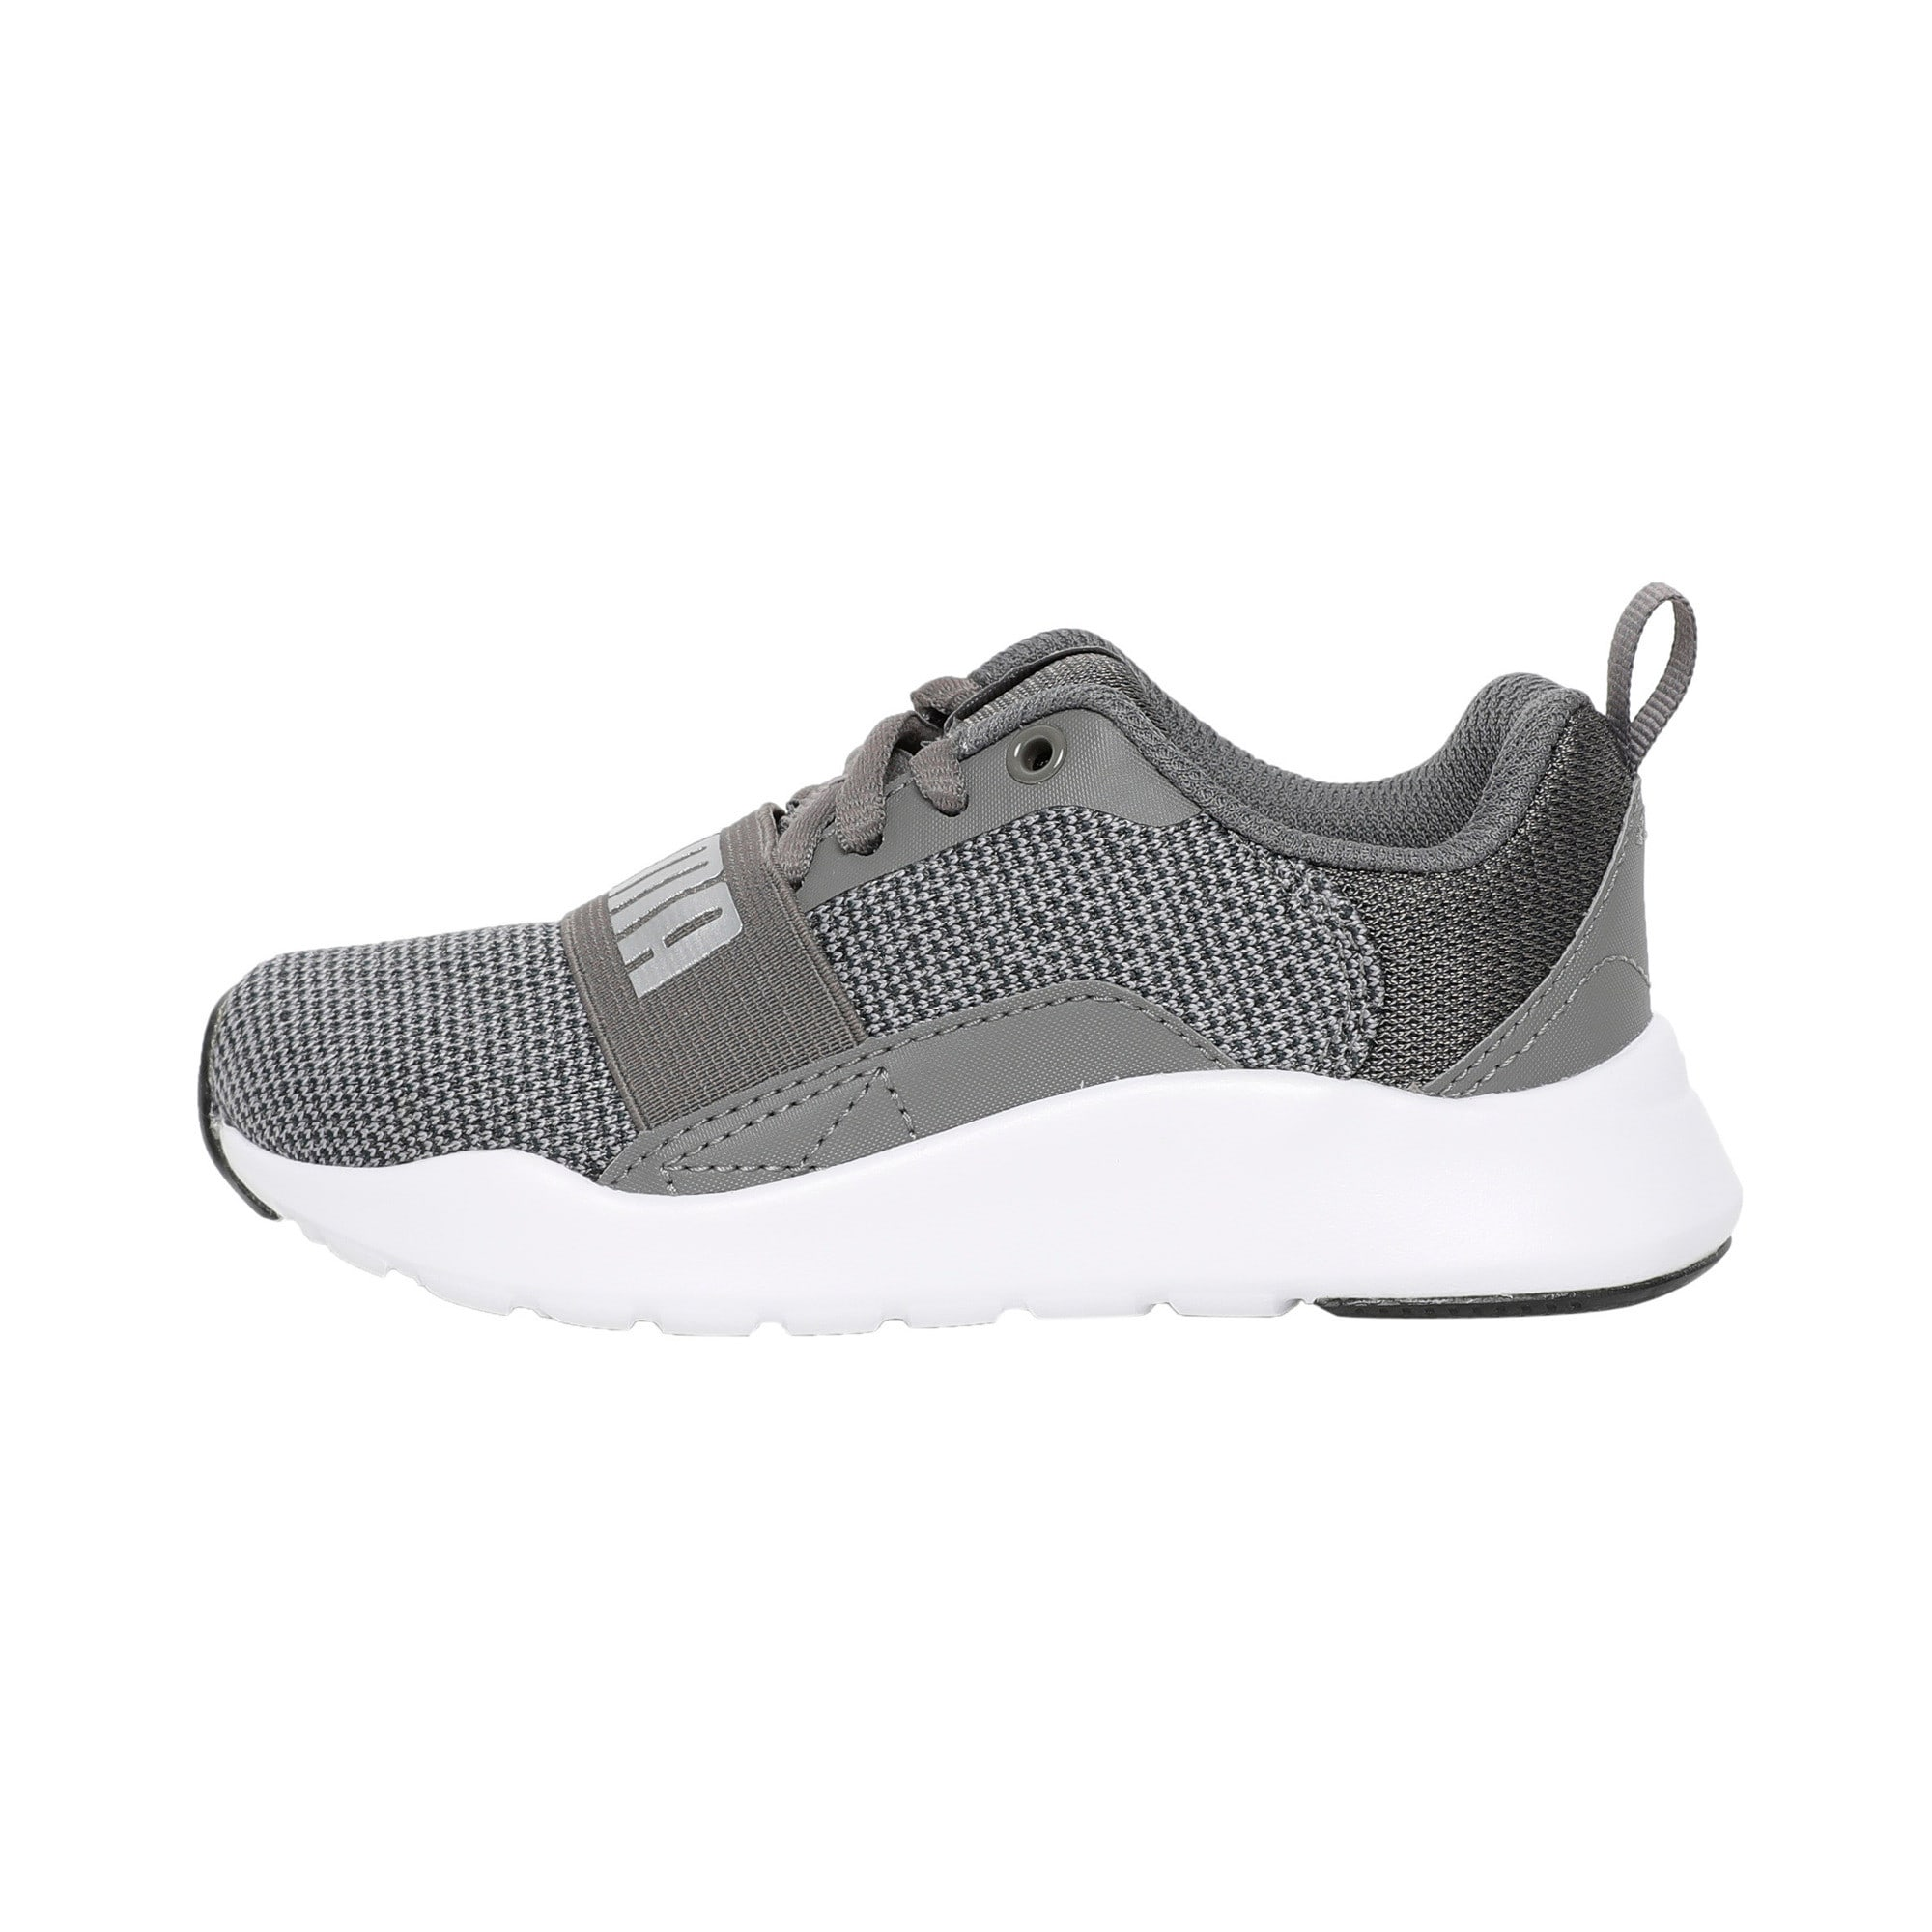 Thumbnail 1 of Wired Knit Kids' Trainers, Charcoal Gray-Puma Silver, medium-IND